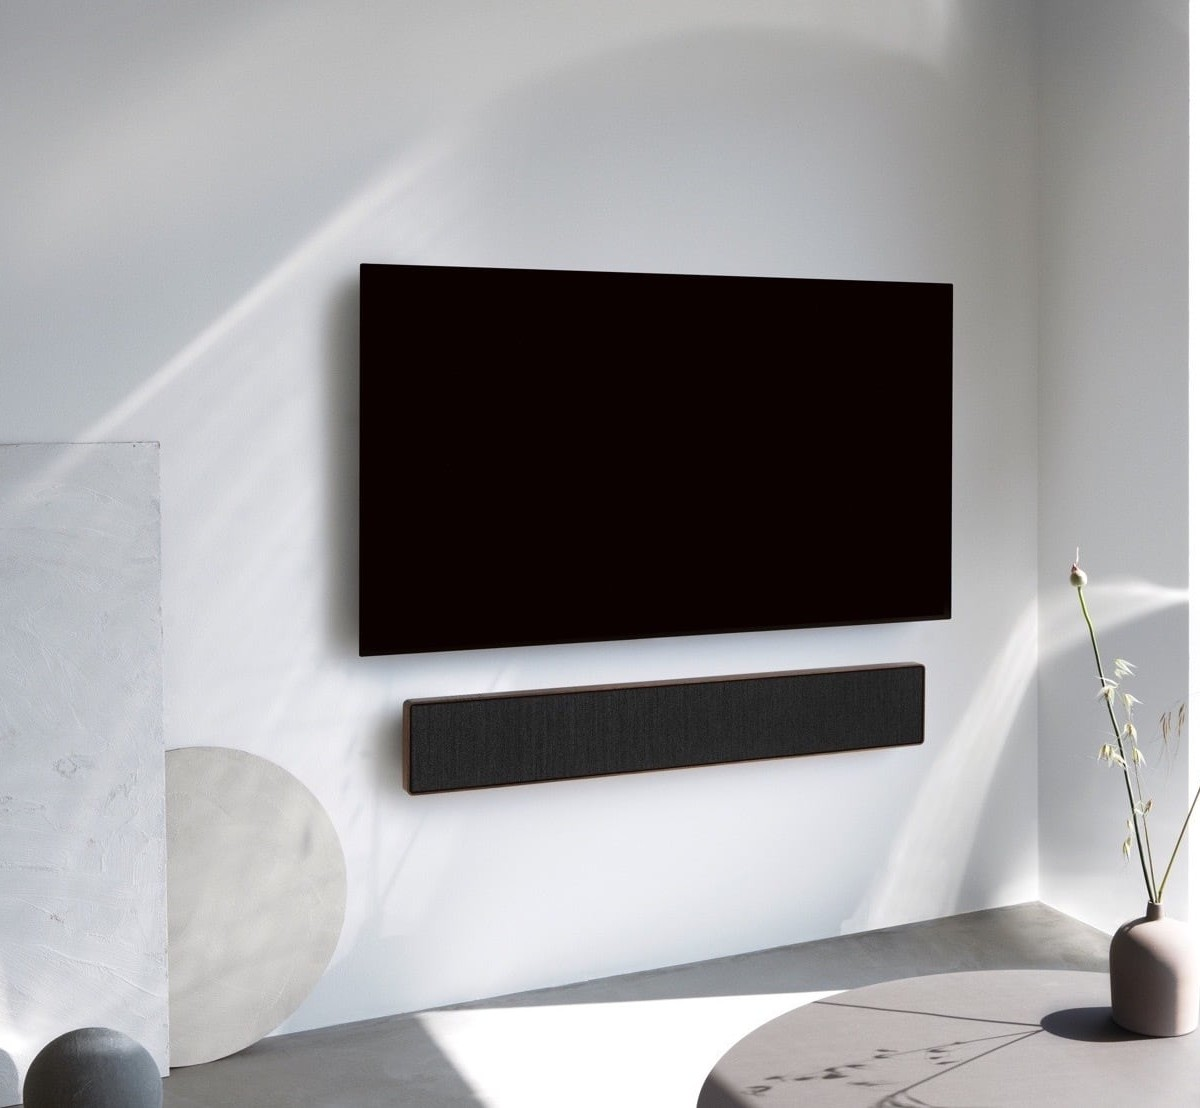 Bang & Olufsen Beosound Stage Soundbar beautifully complements your television